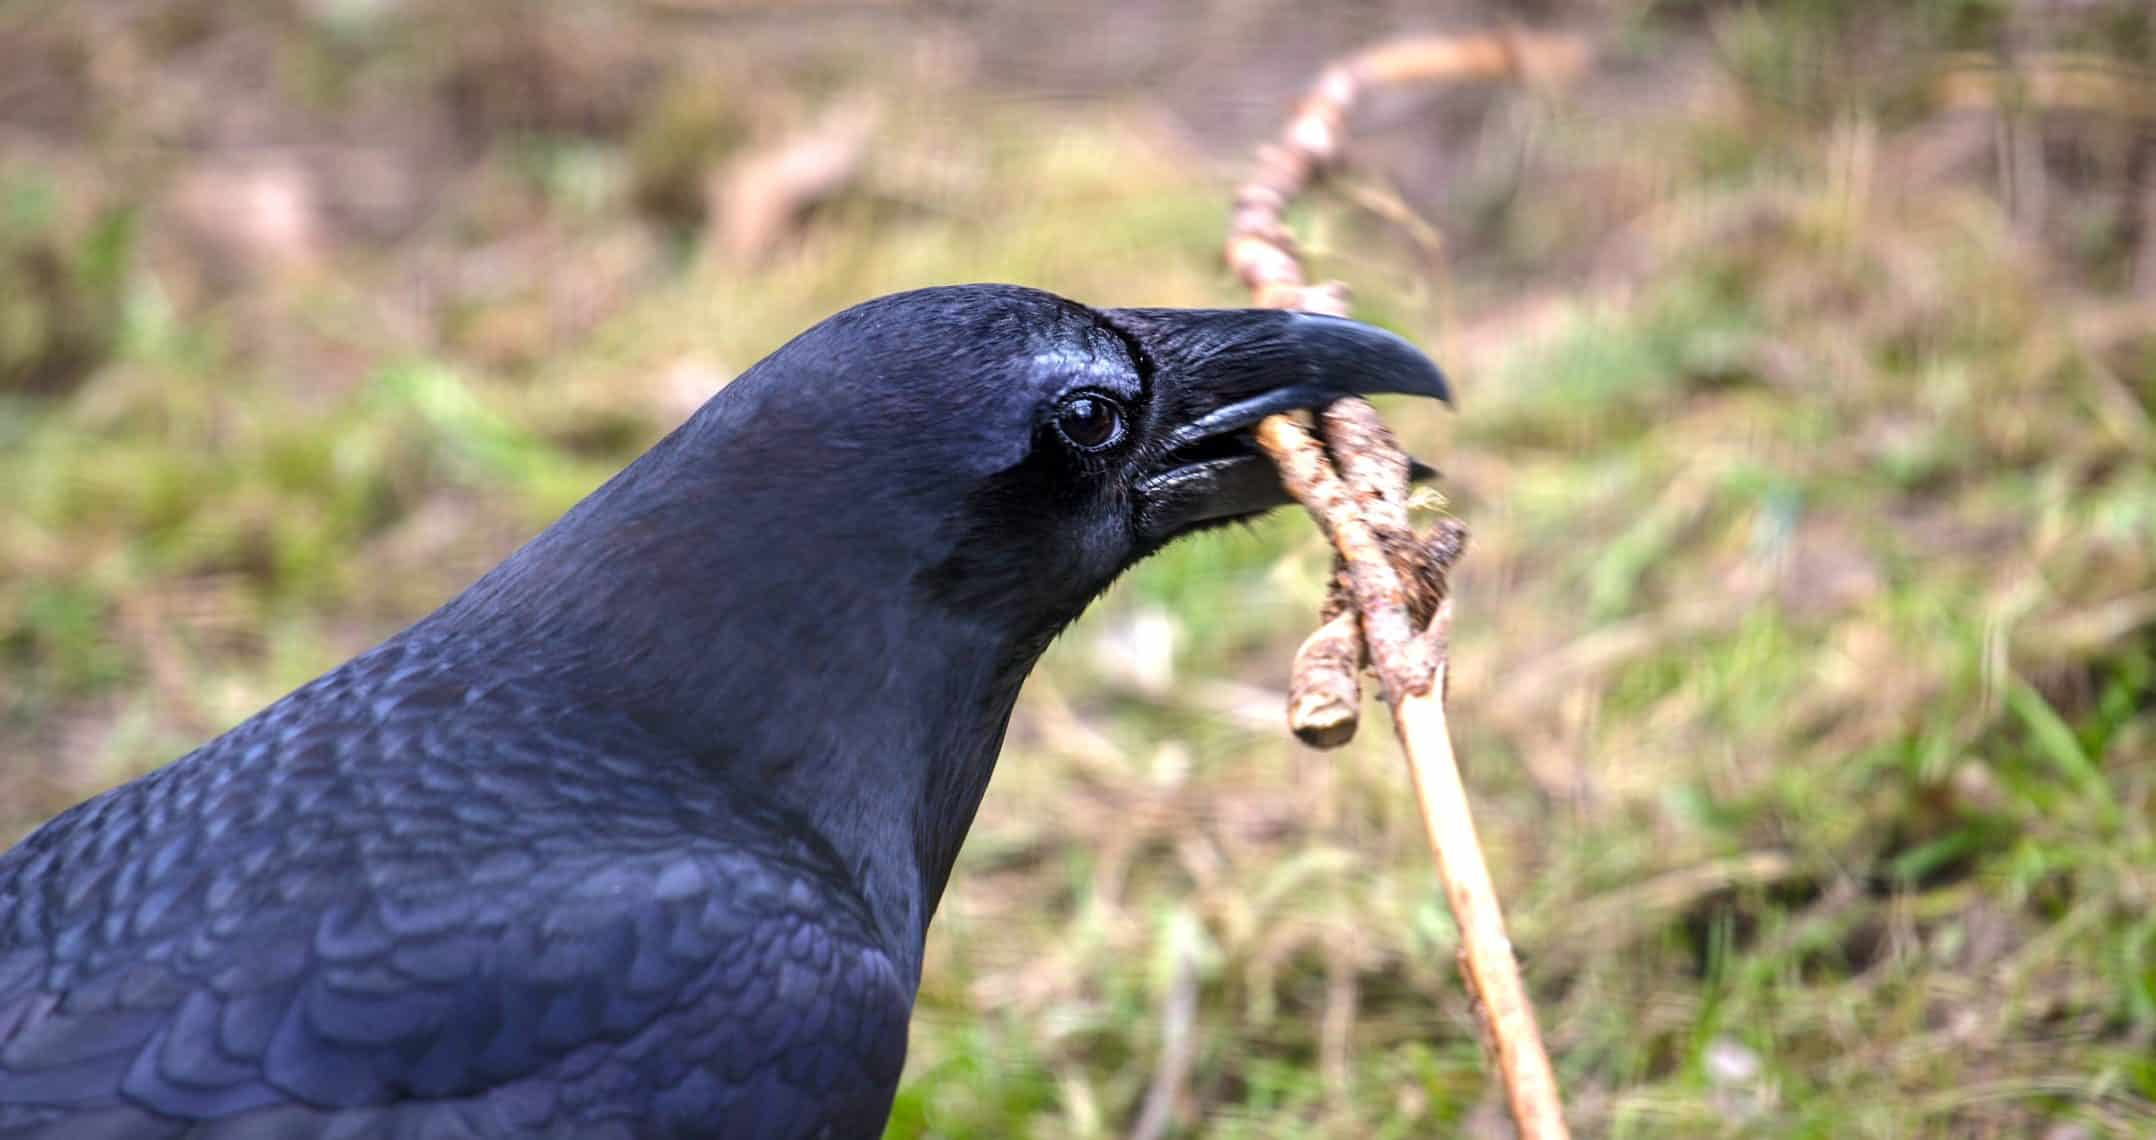 Raven-playing-with-twigs-e1516297530563.jpg